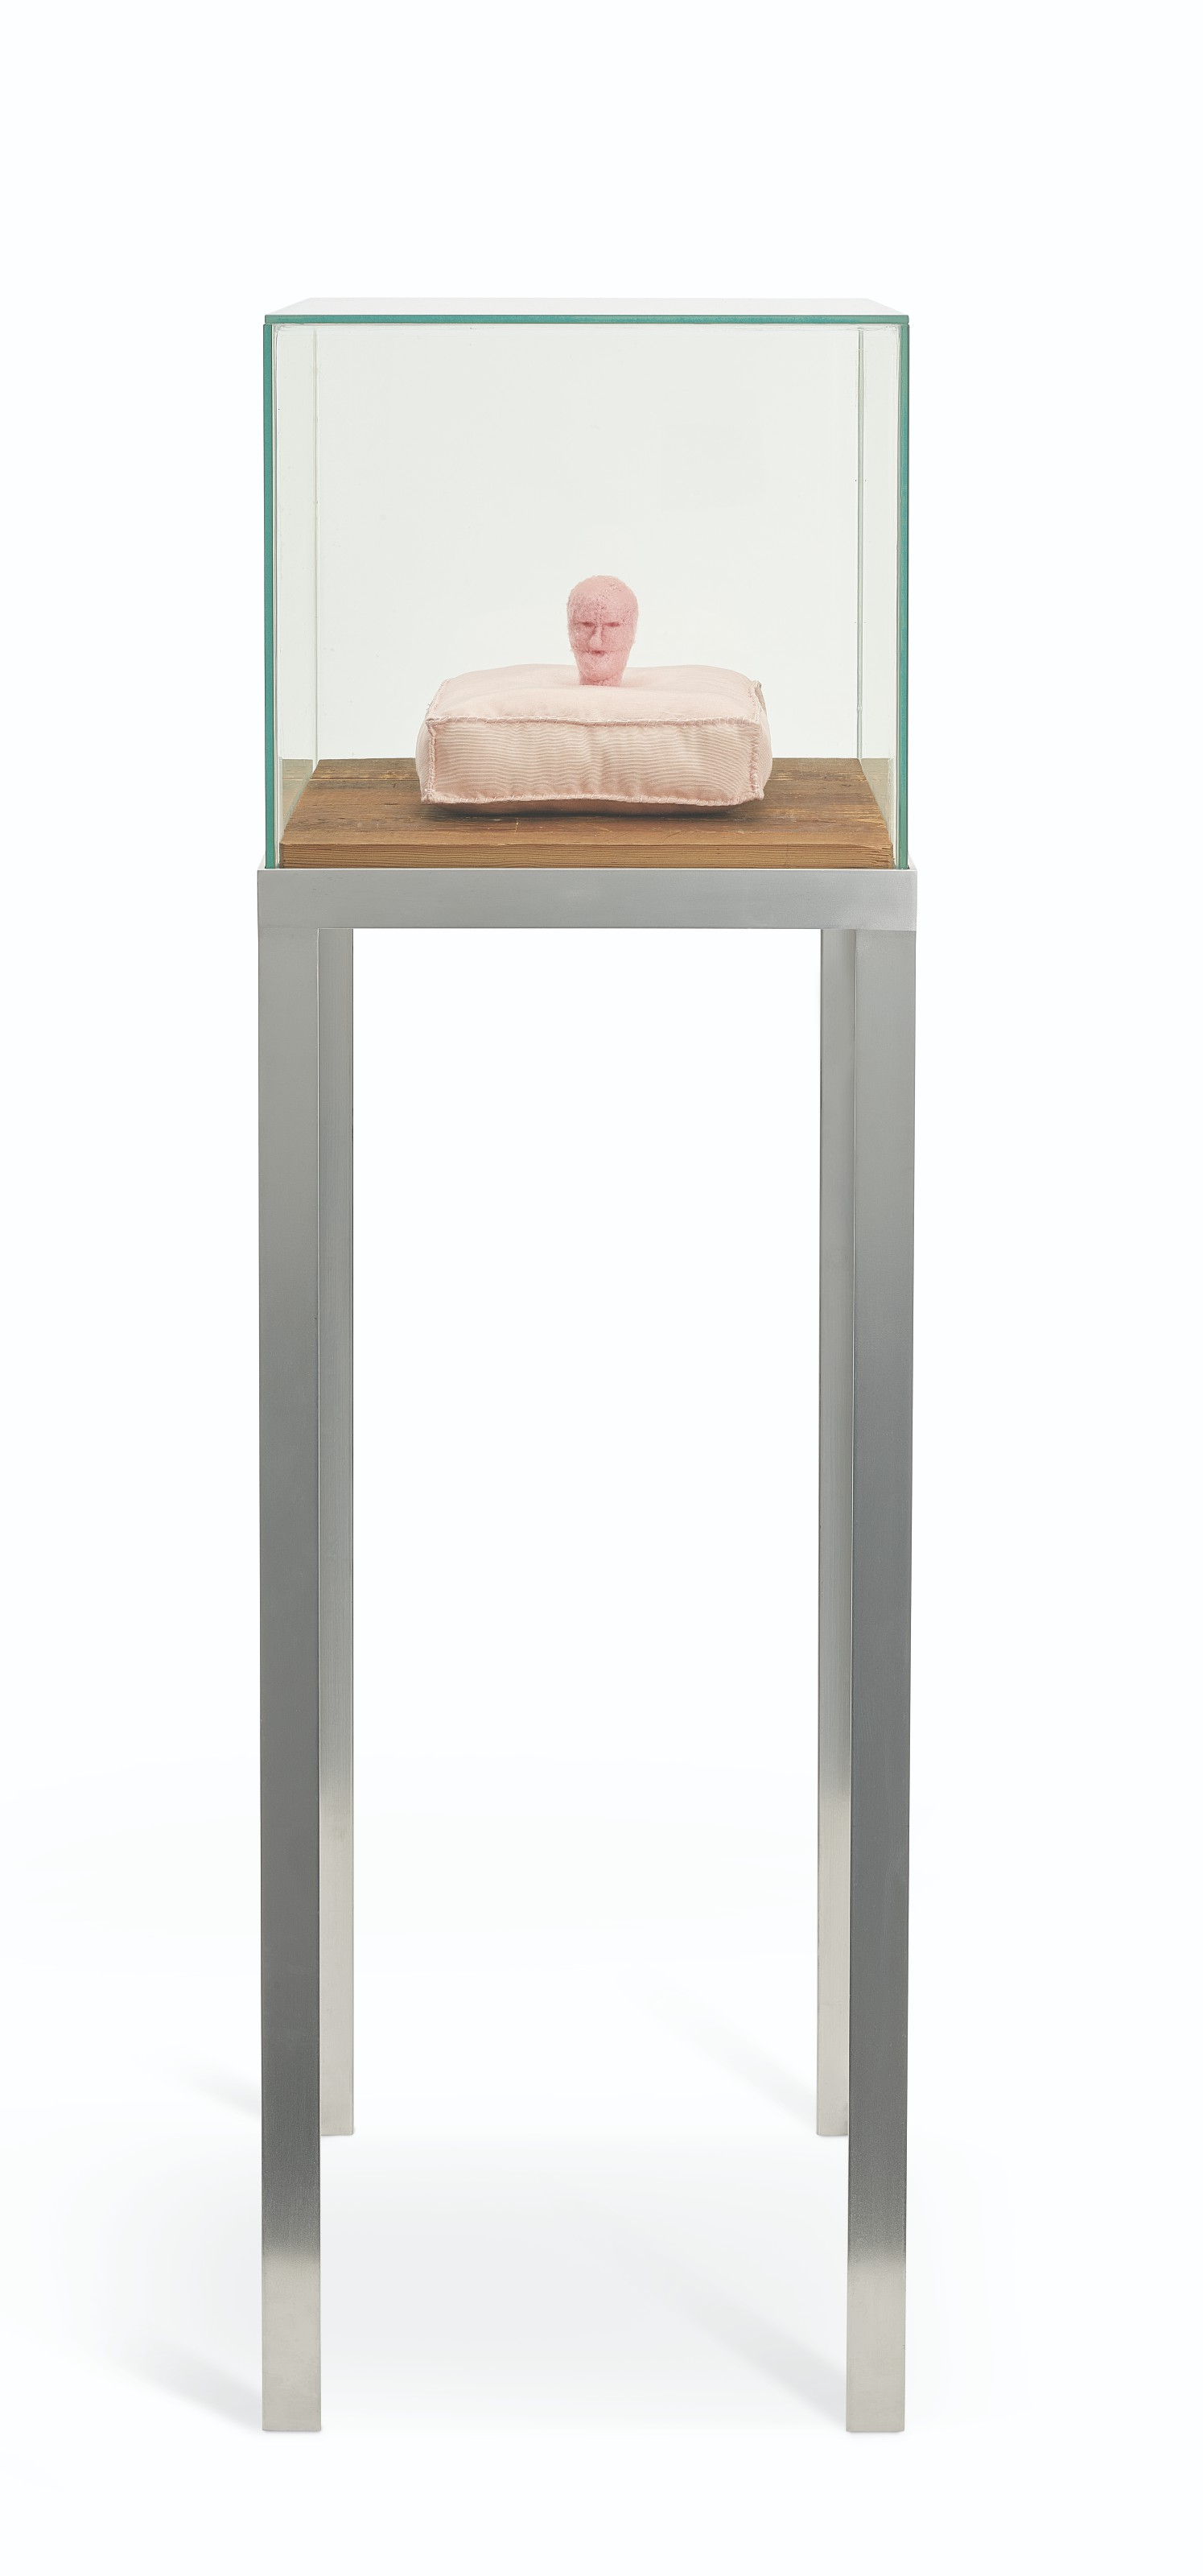 Louise Bourgeois (1911-2010), Untitled, 2002. Fabric, stainless steel, glass and wood. This work is unique. Sculpture 6½ x 9 x 9 in (16.5 x 22.9 x 22.9 cm). Overall 53⅝ x 16⅜ x 16⅜ in (136.3 x 41.5 x 41.5 cm). Estimate £500,000-700,000. Offered in20th21st Century Evening Sale including Thinking Italianon 15 October 2021 at Christie's in London